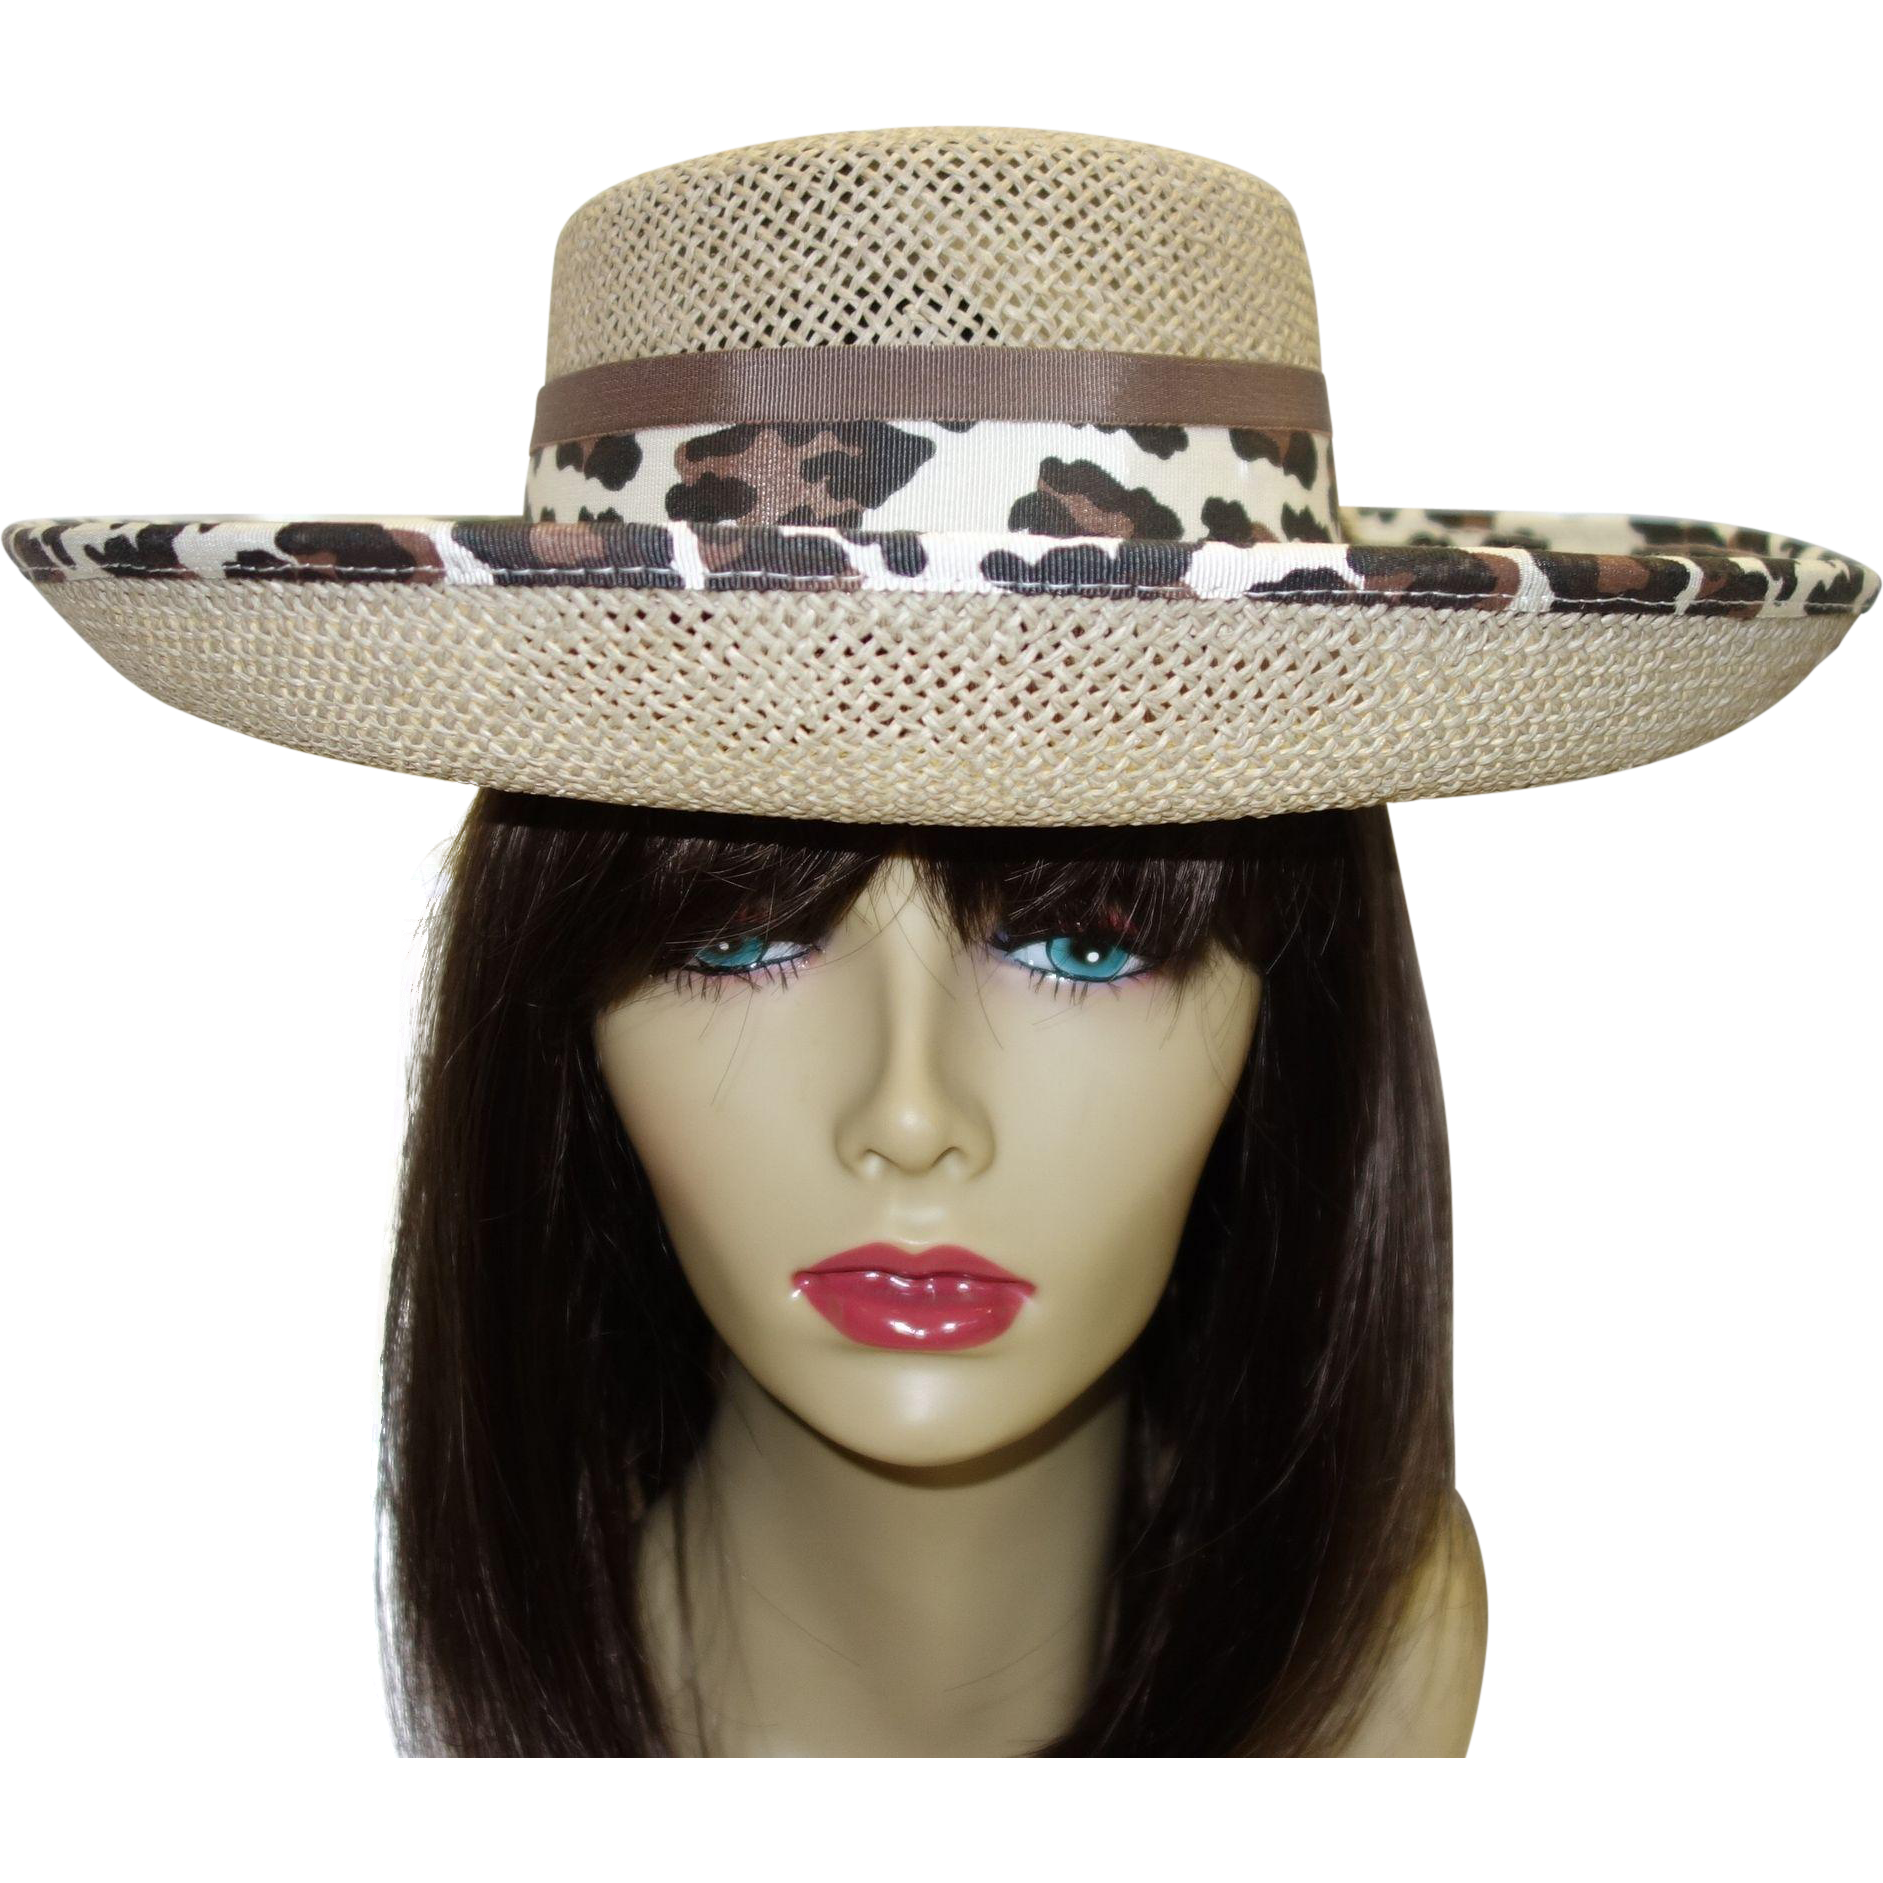 Vintage Structured Straw Hat with Upturned Brim  by Sonni San Francisco MINT